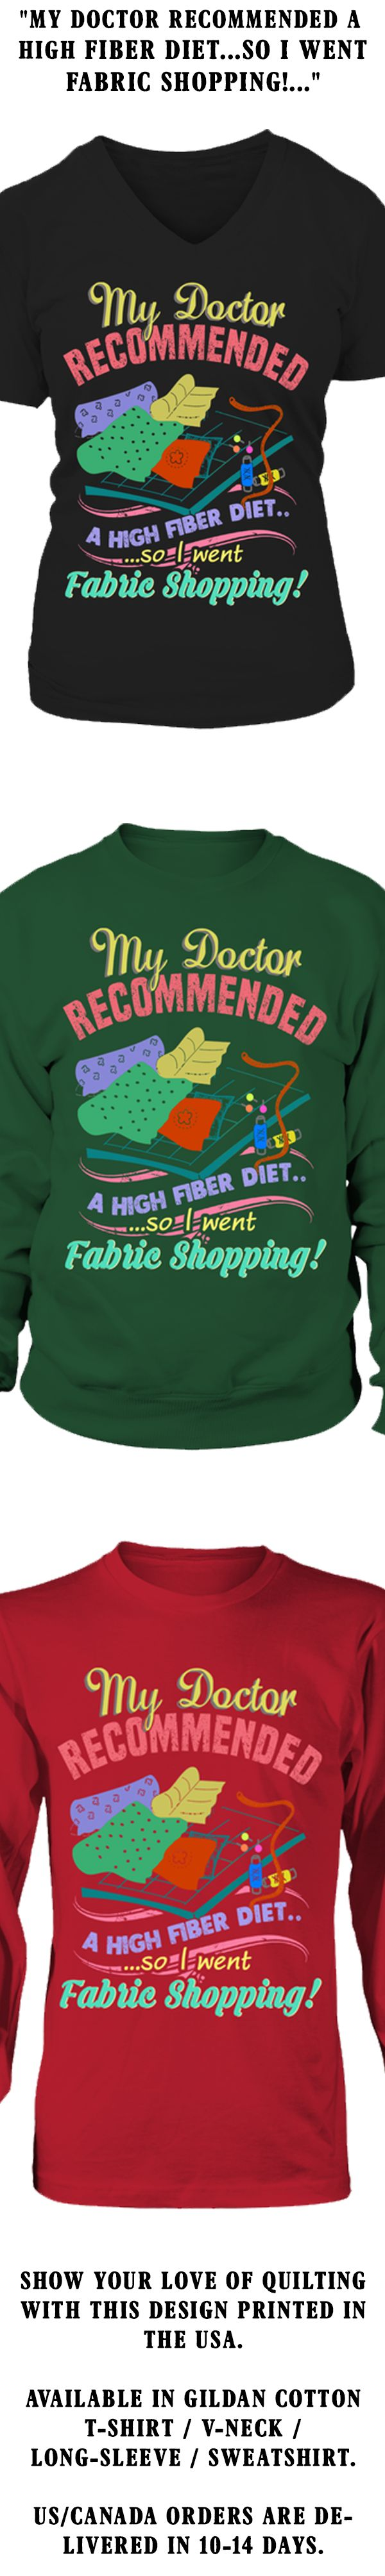 Click Here For The Mug Version My Doctor Recommend A High Fiber Diet...So I Went Fabric Shopping!... Show your love of Quilting with this shirt printed in the USA. Available in Gildan Cotton T-Shirt /